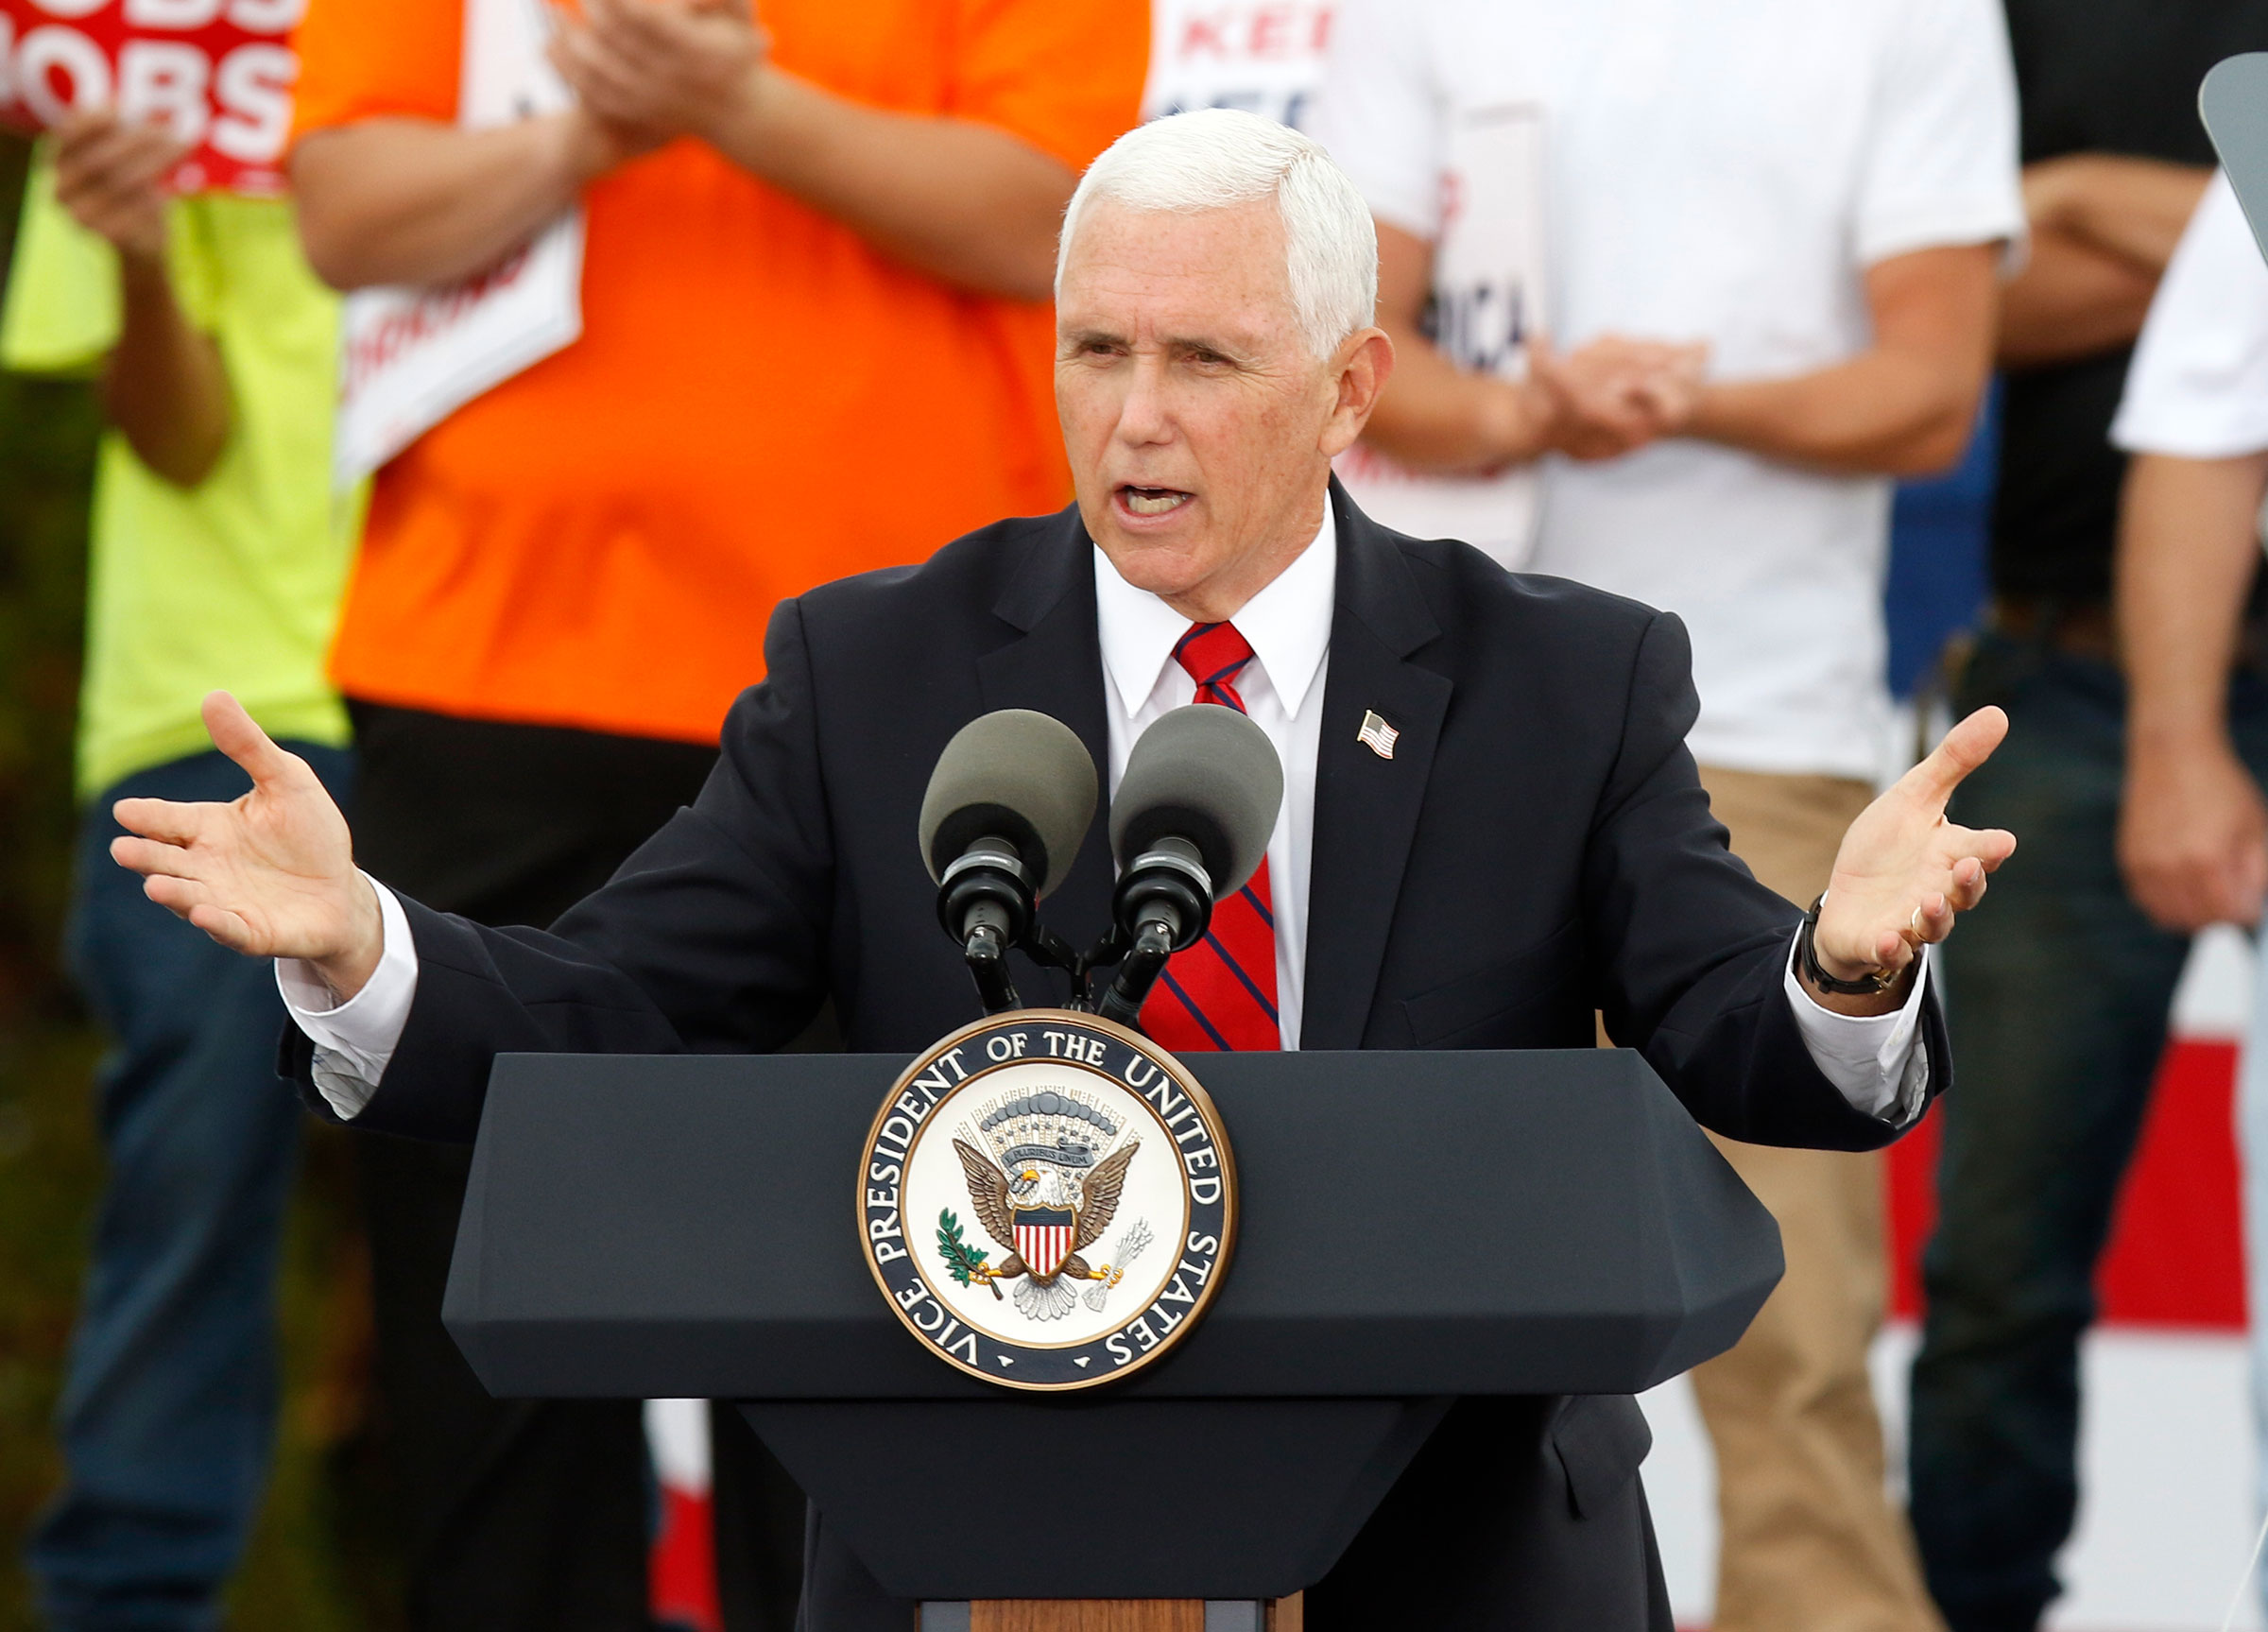 Vice President Mike Pence speaks at a campaign rally in Columbus, Ohio, on October 12.